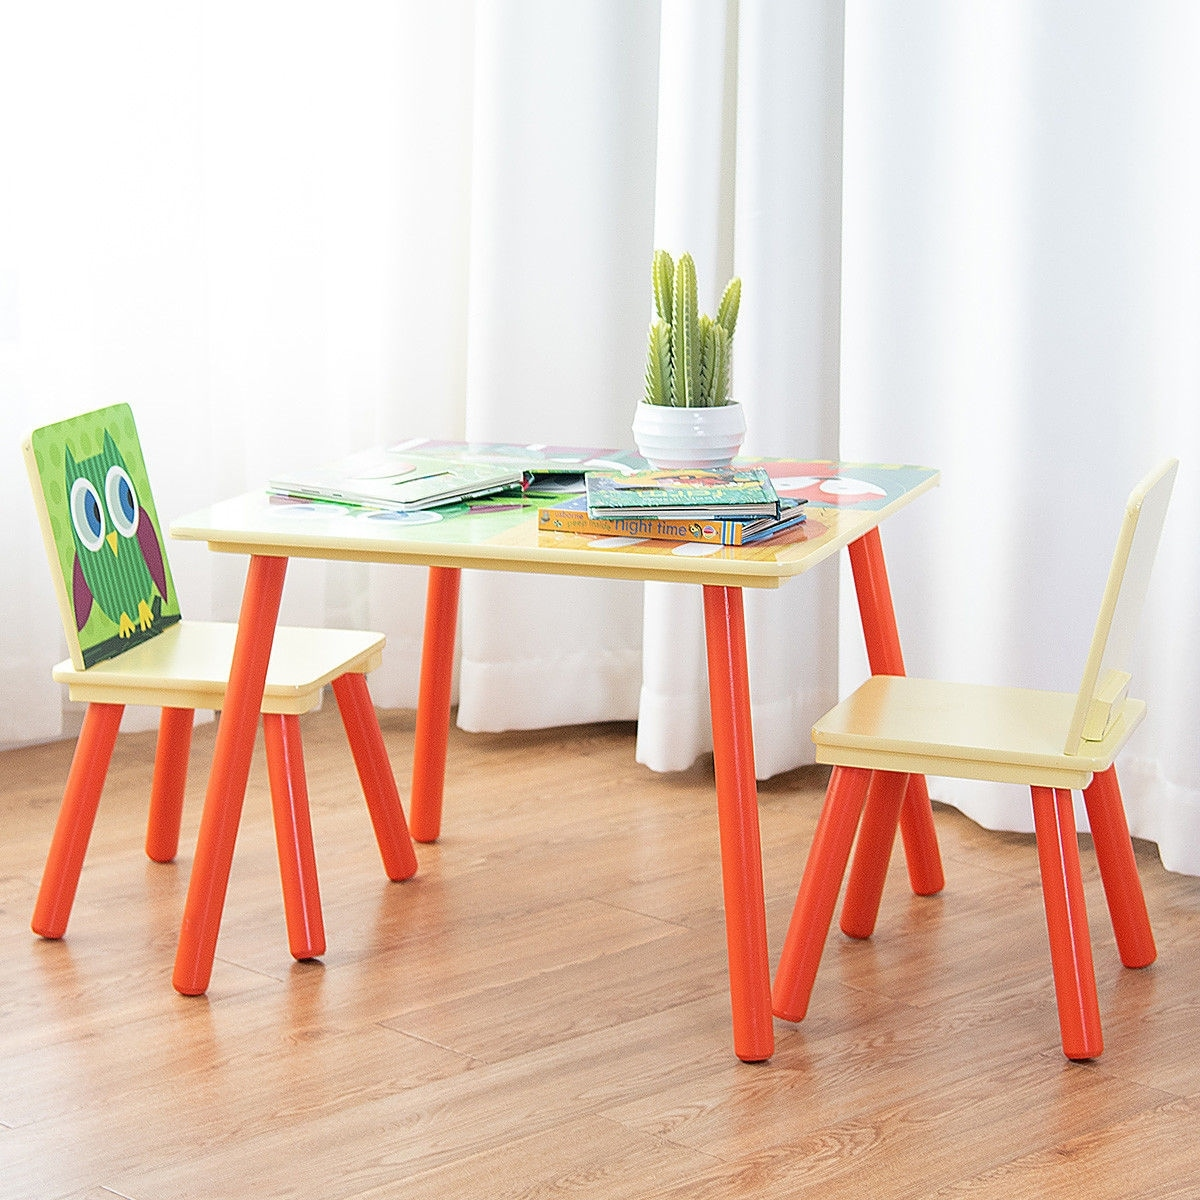 Exceptionnel Shop Gymax Kids Table And 2 Chairs Set For Toddler Baby Gift Desk Furniture  Cartoon Pattern   Free Shipping Today   Overstock.com   22827568